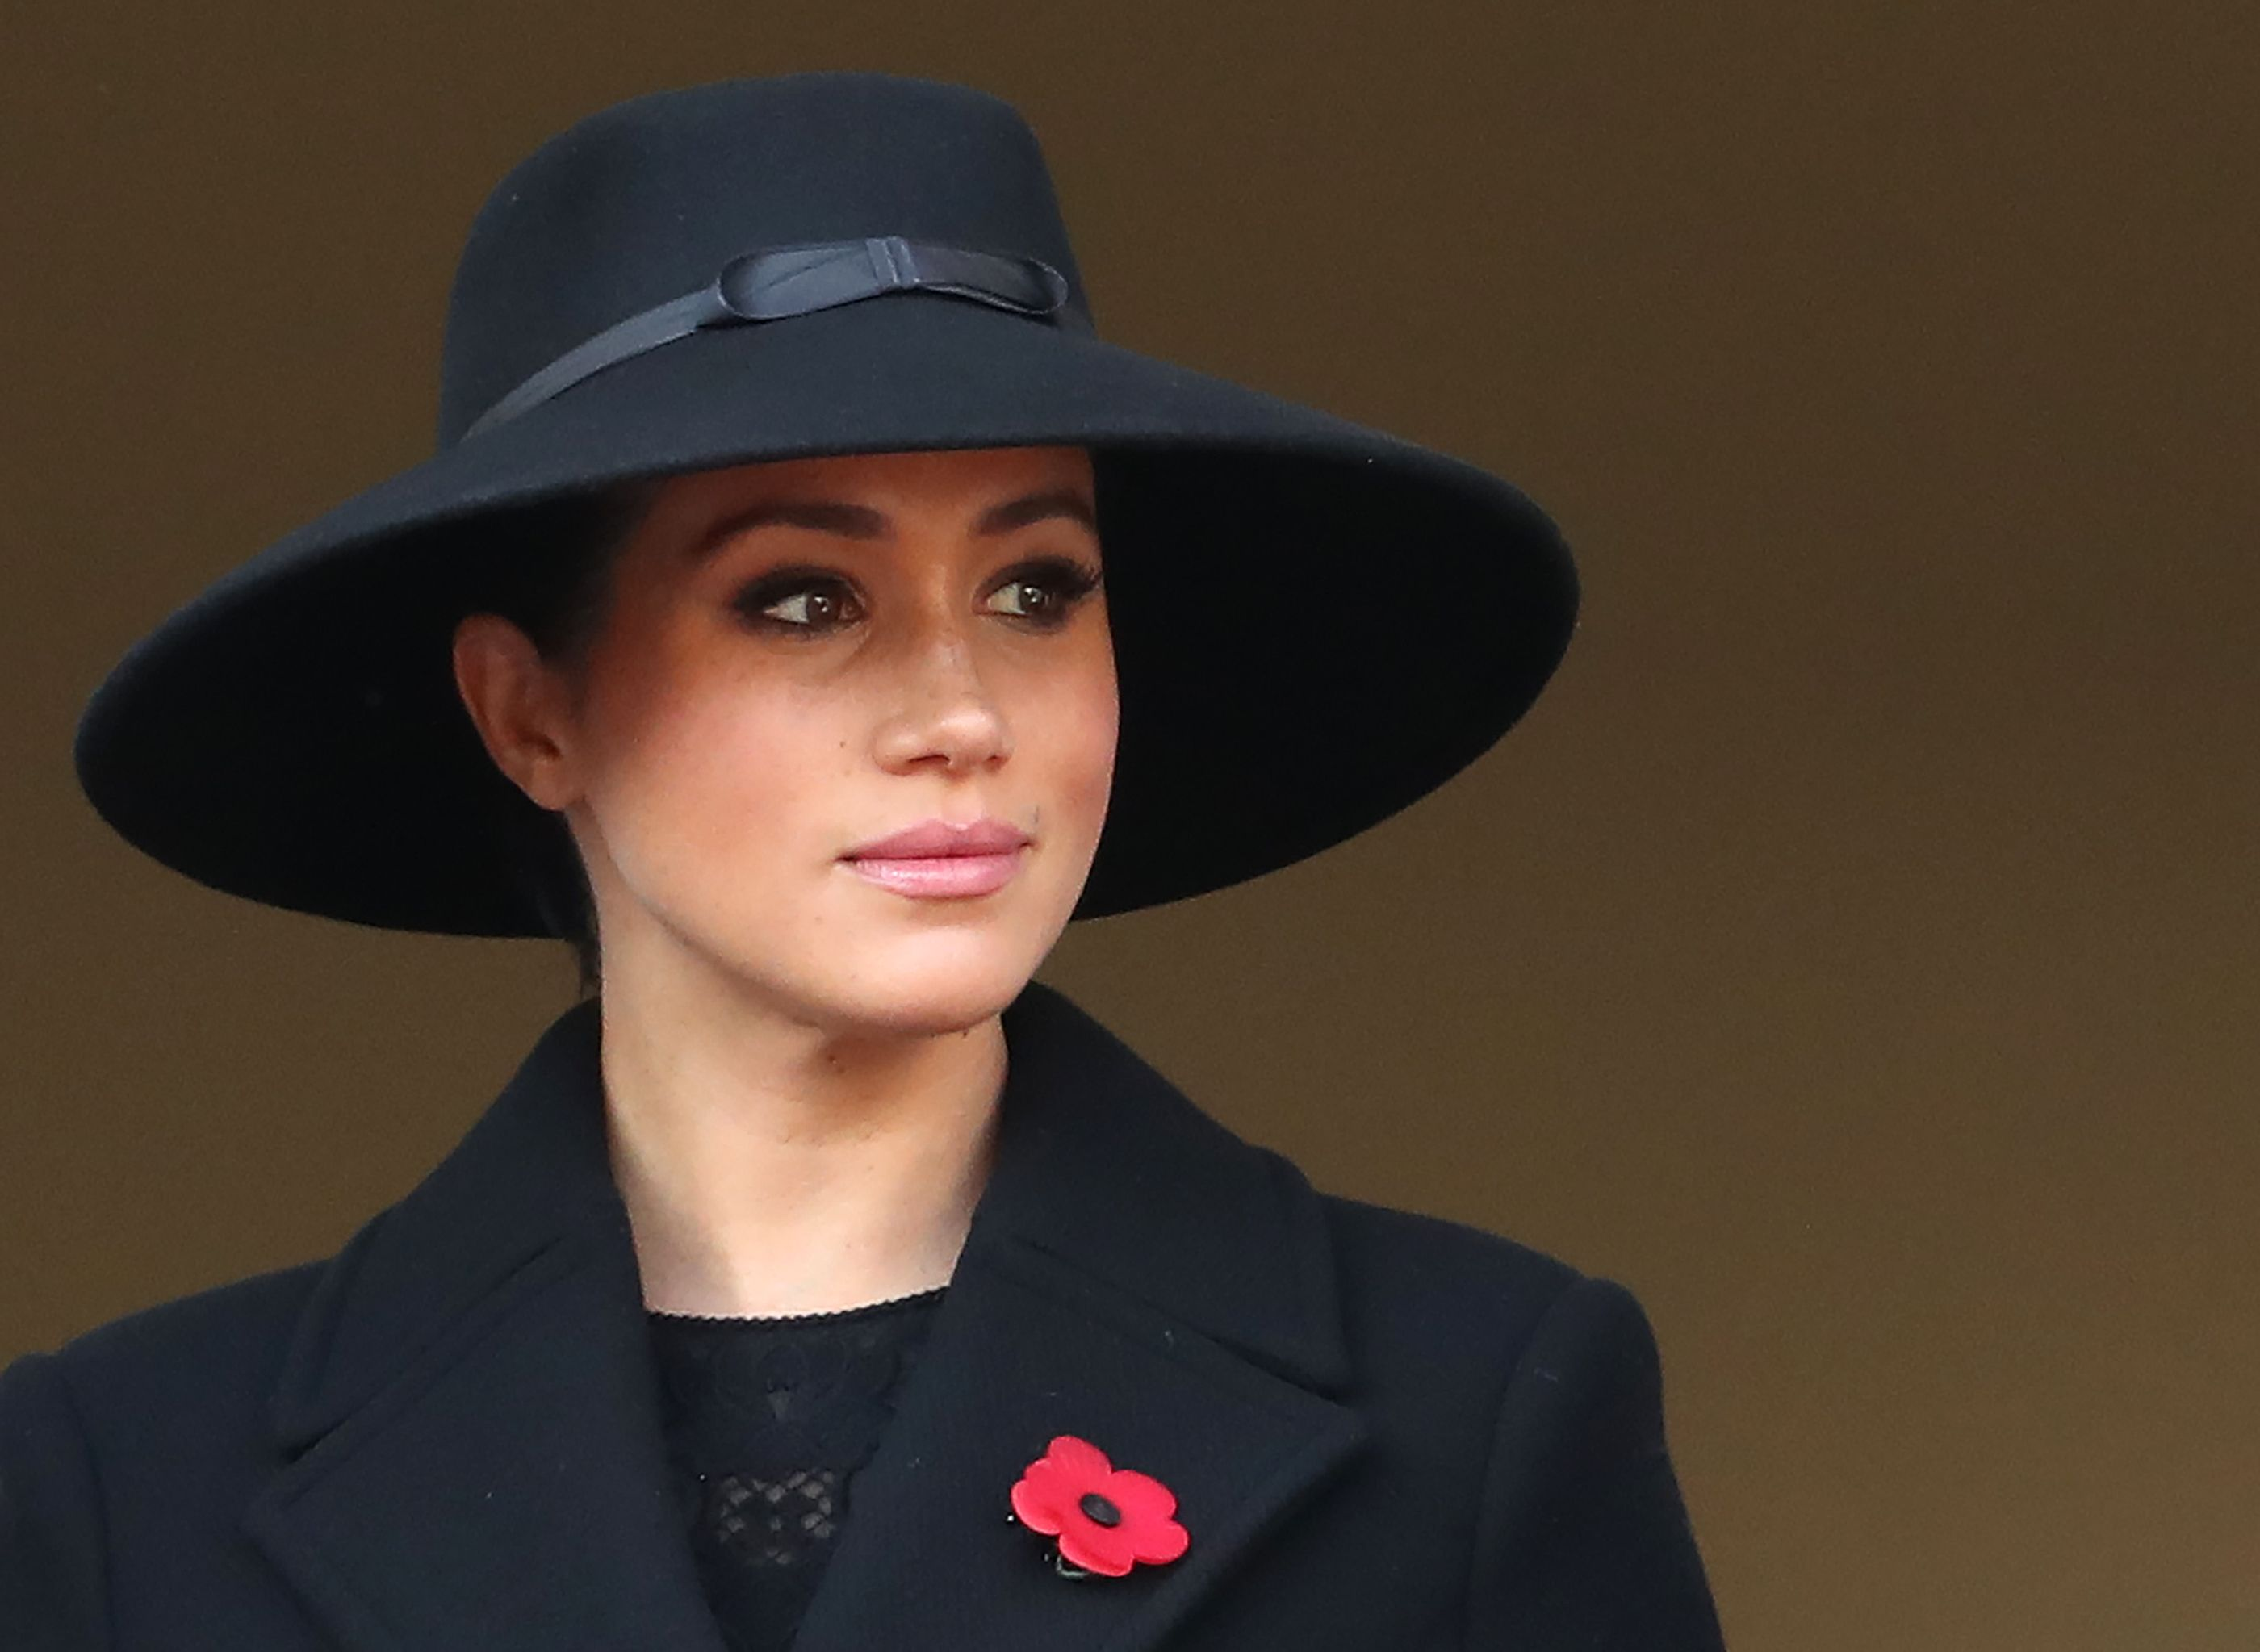 Meghan Markle looks off to the right of the camera posing in front of a brown background. She wears a black hat and jacket with a red flower pin